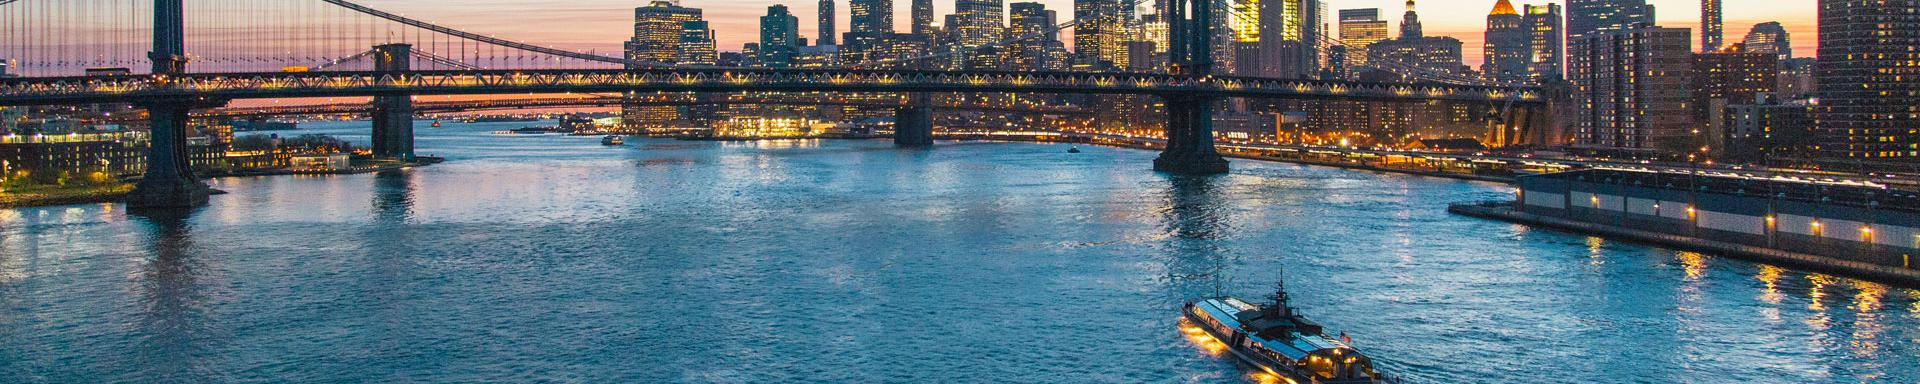 Gratis Fensterplatz bei jedem Bateaux New York Dinner Cruise!